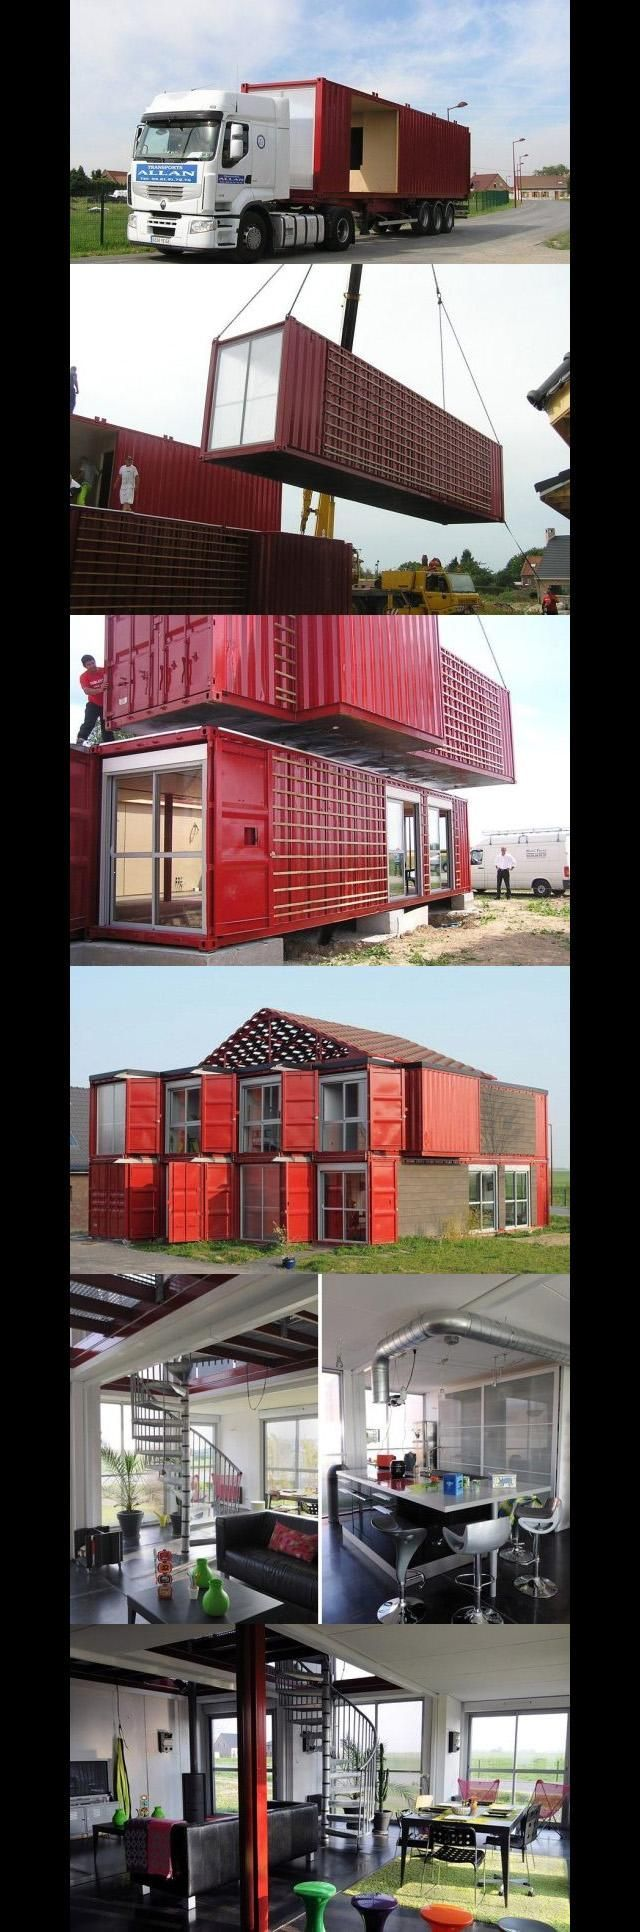 Unexpectedly Cool Shipping Container Garage Conversion Plans & Ideas